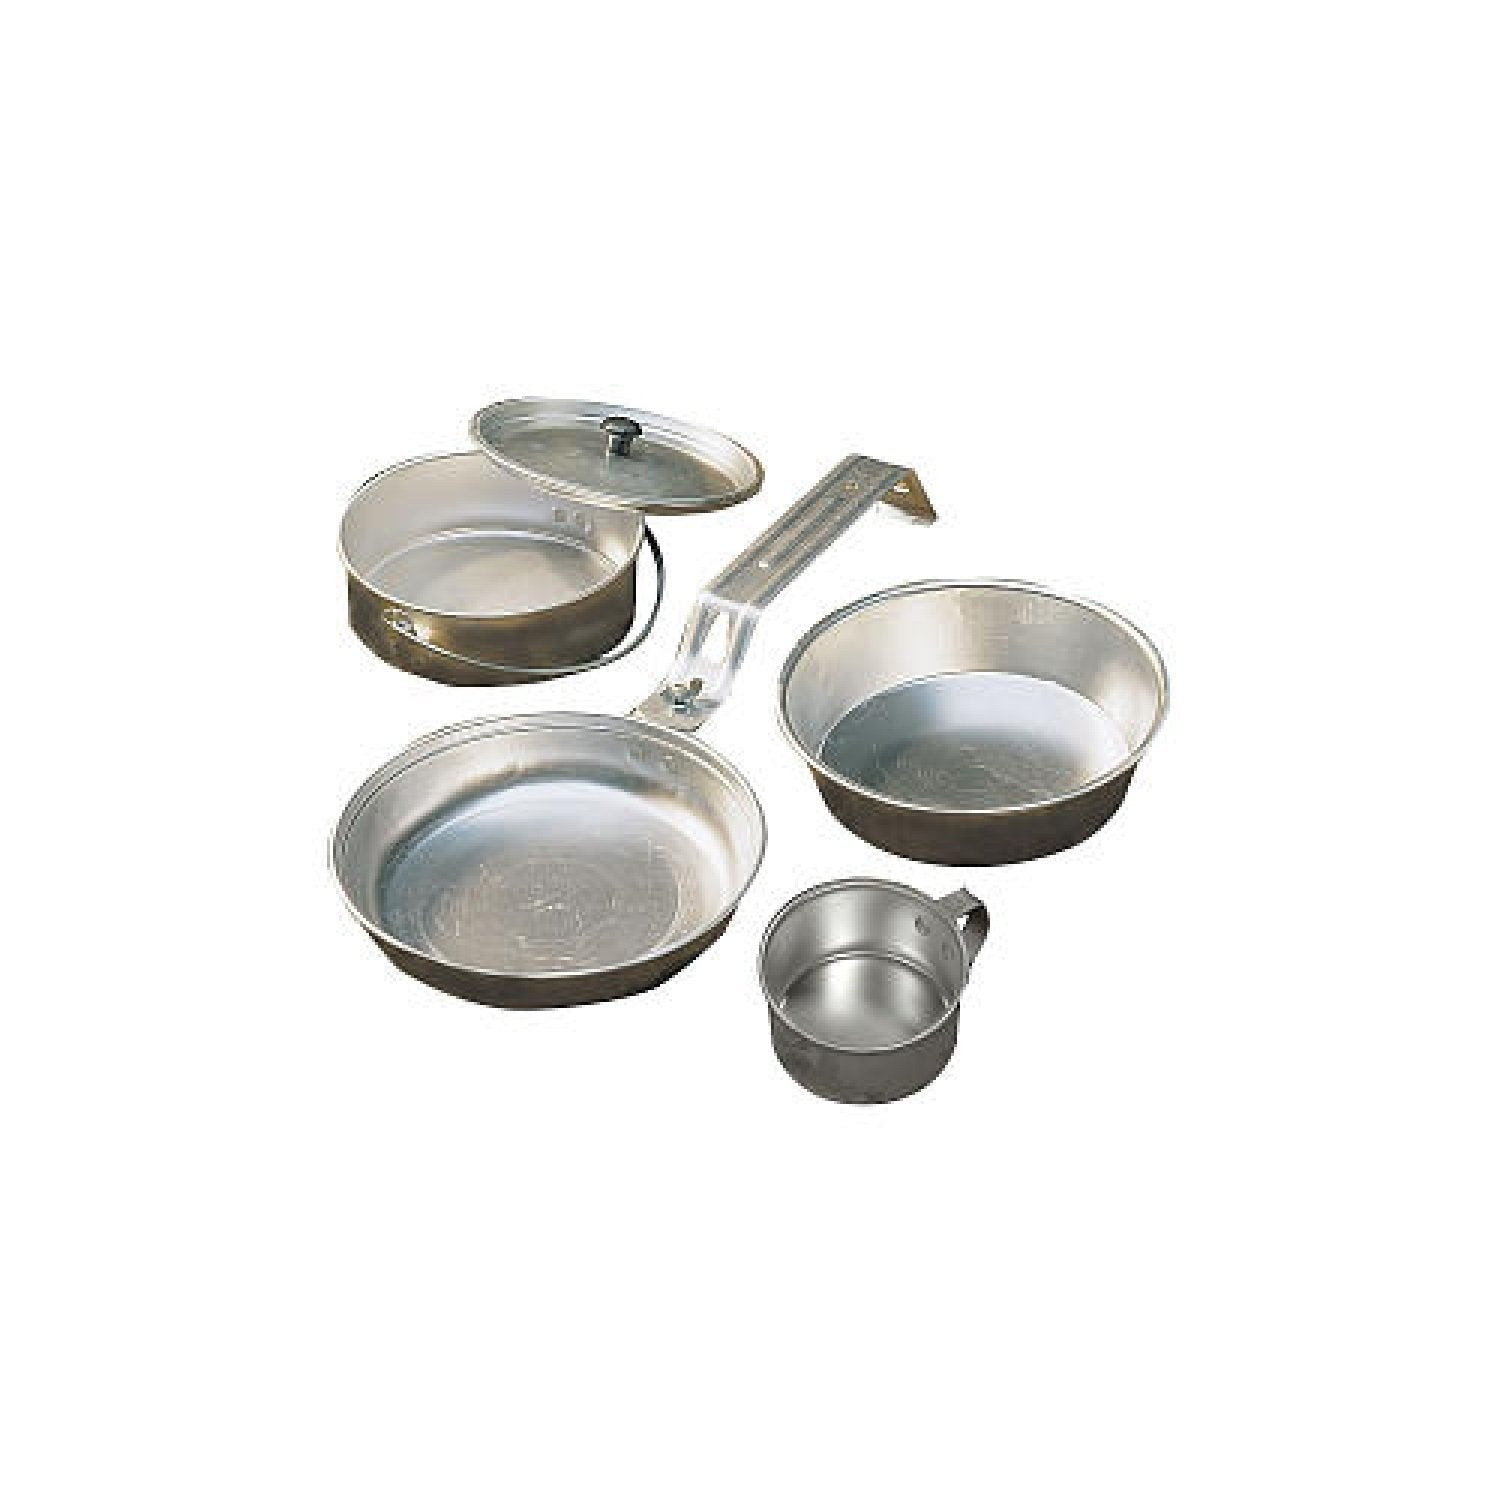 Outdoor Cooking Coleman Mess Kit Camping Cookware made from Aluminium